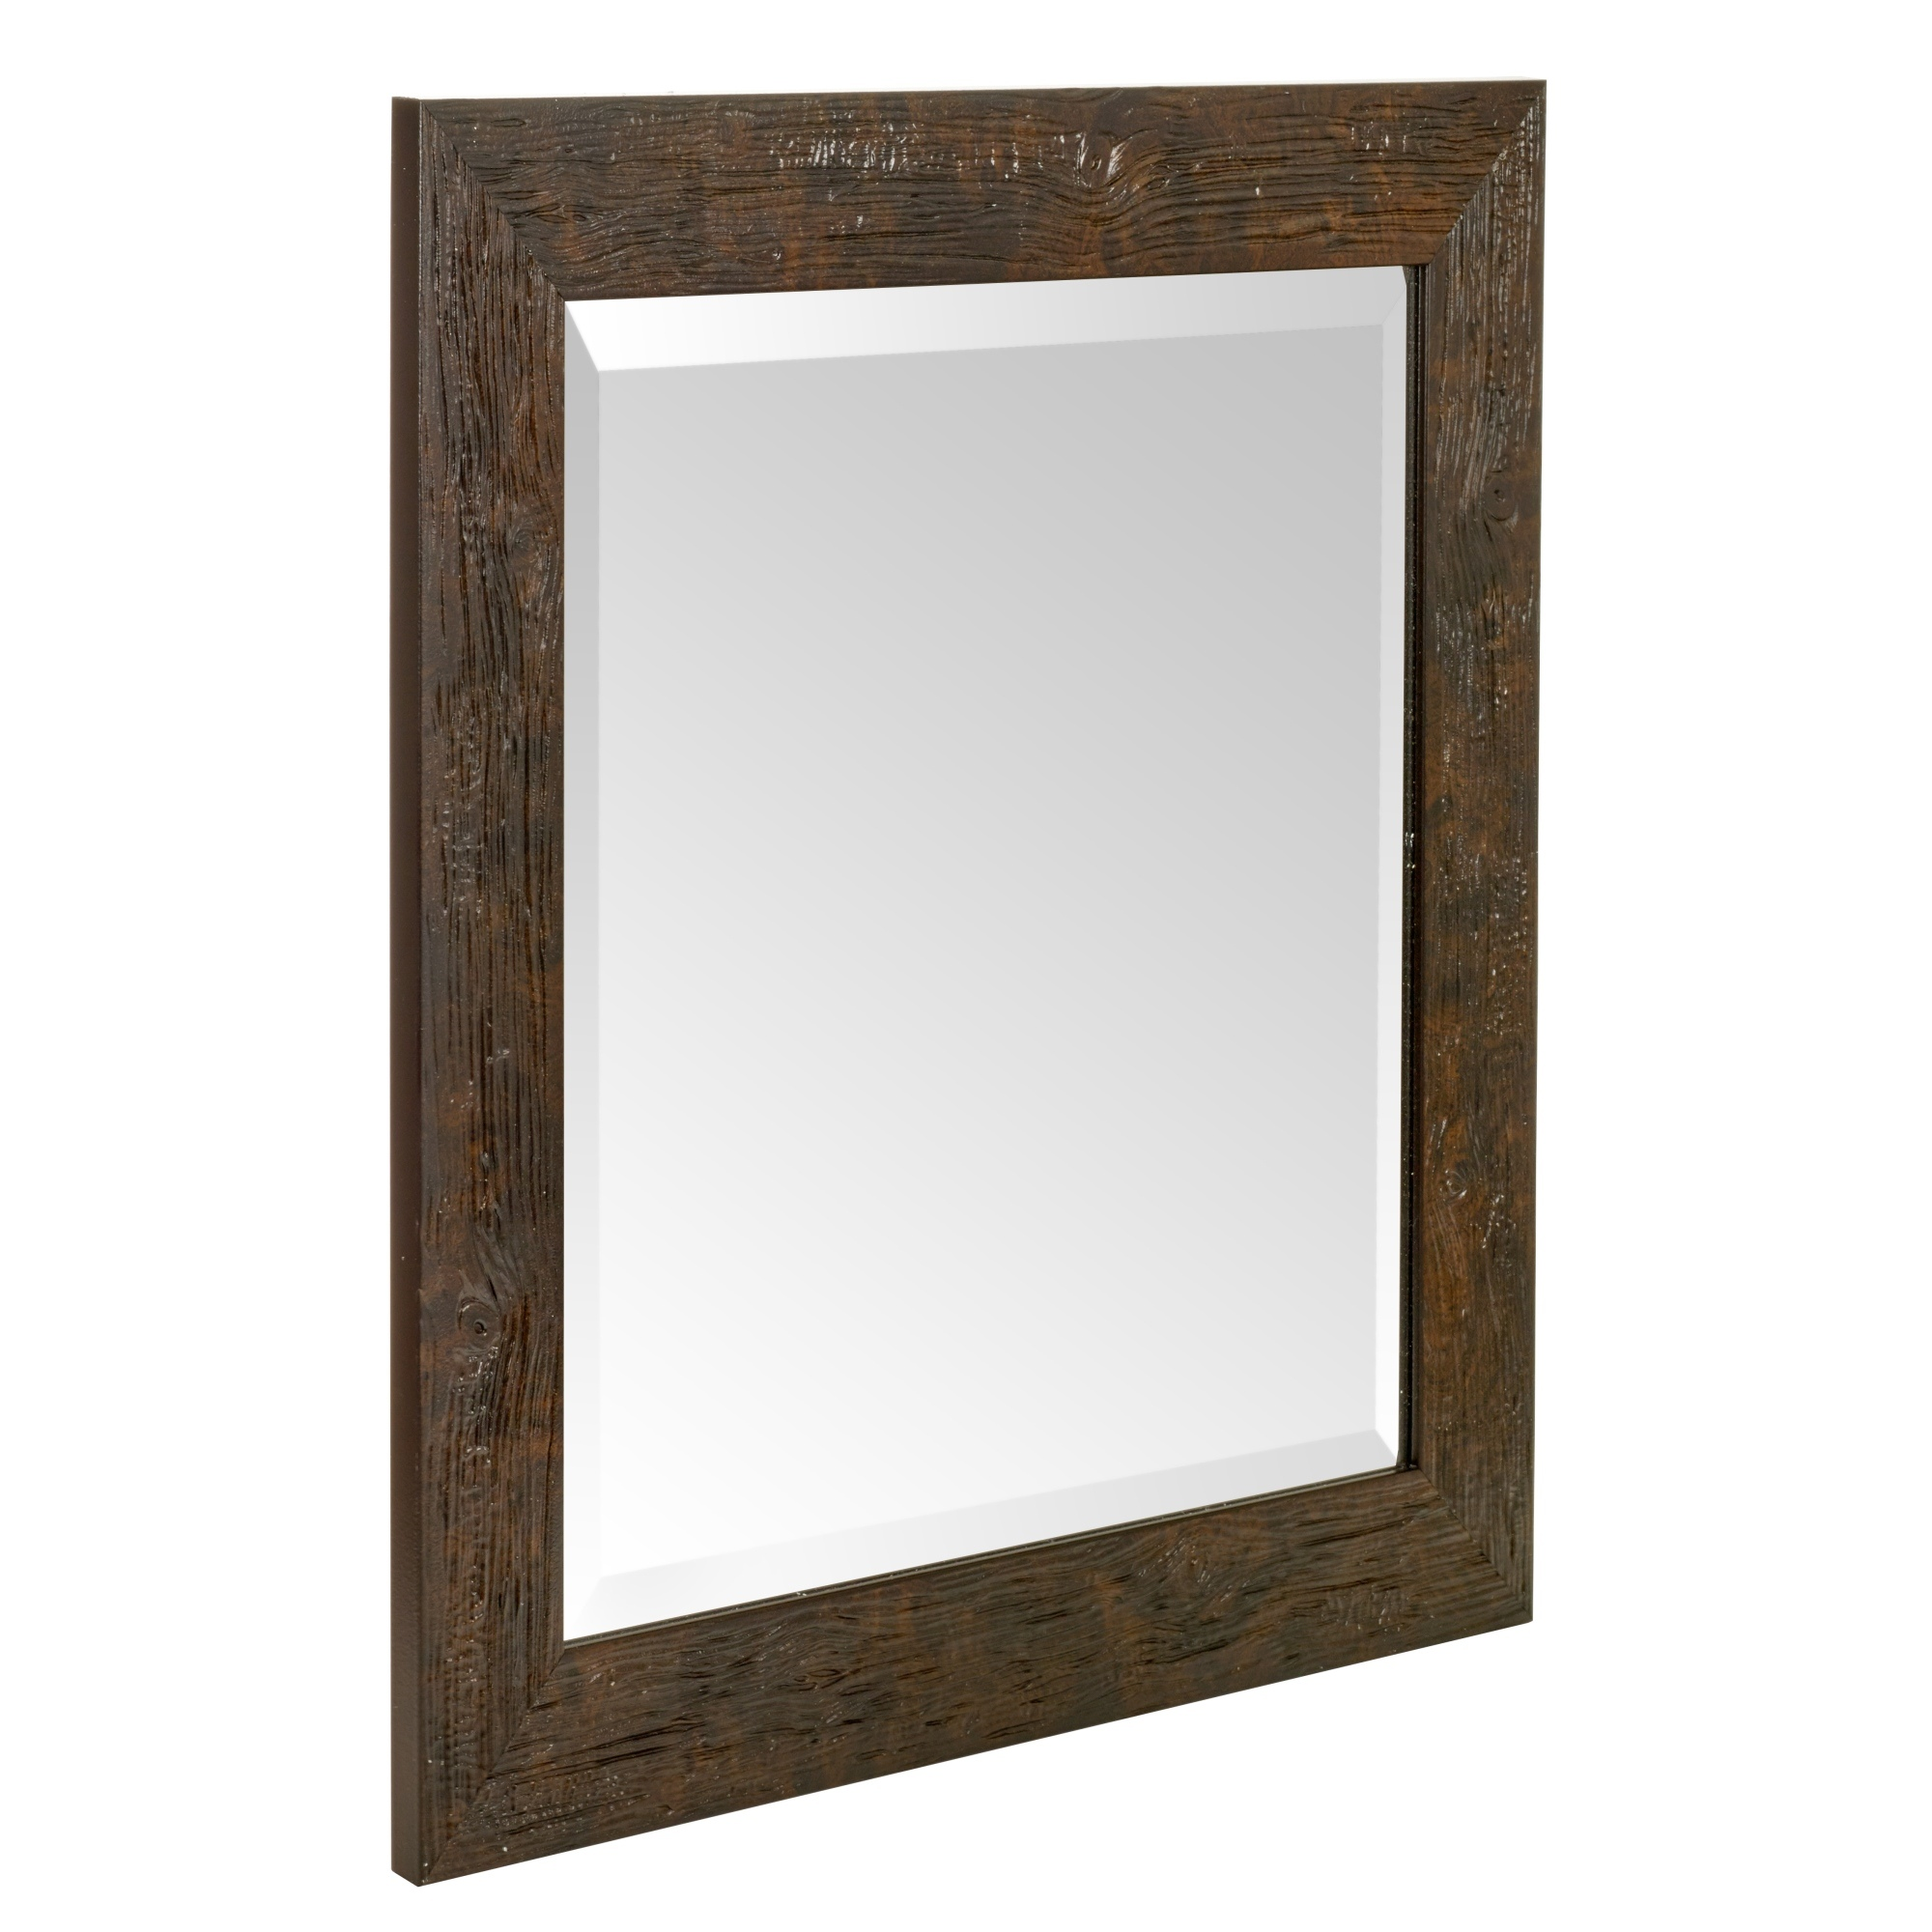 Large wall glass square mirror 50 x 50 cm mountable wood for Miroir 50 x 70 cm